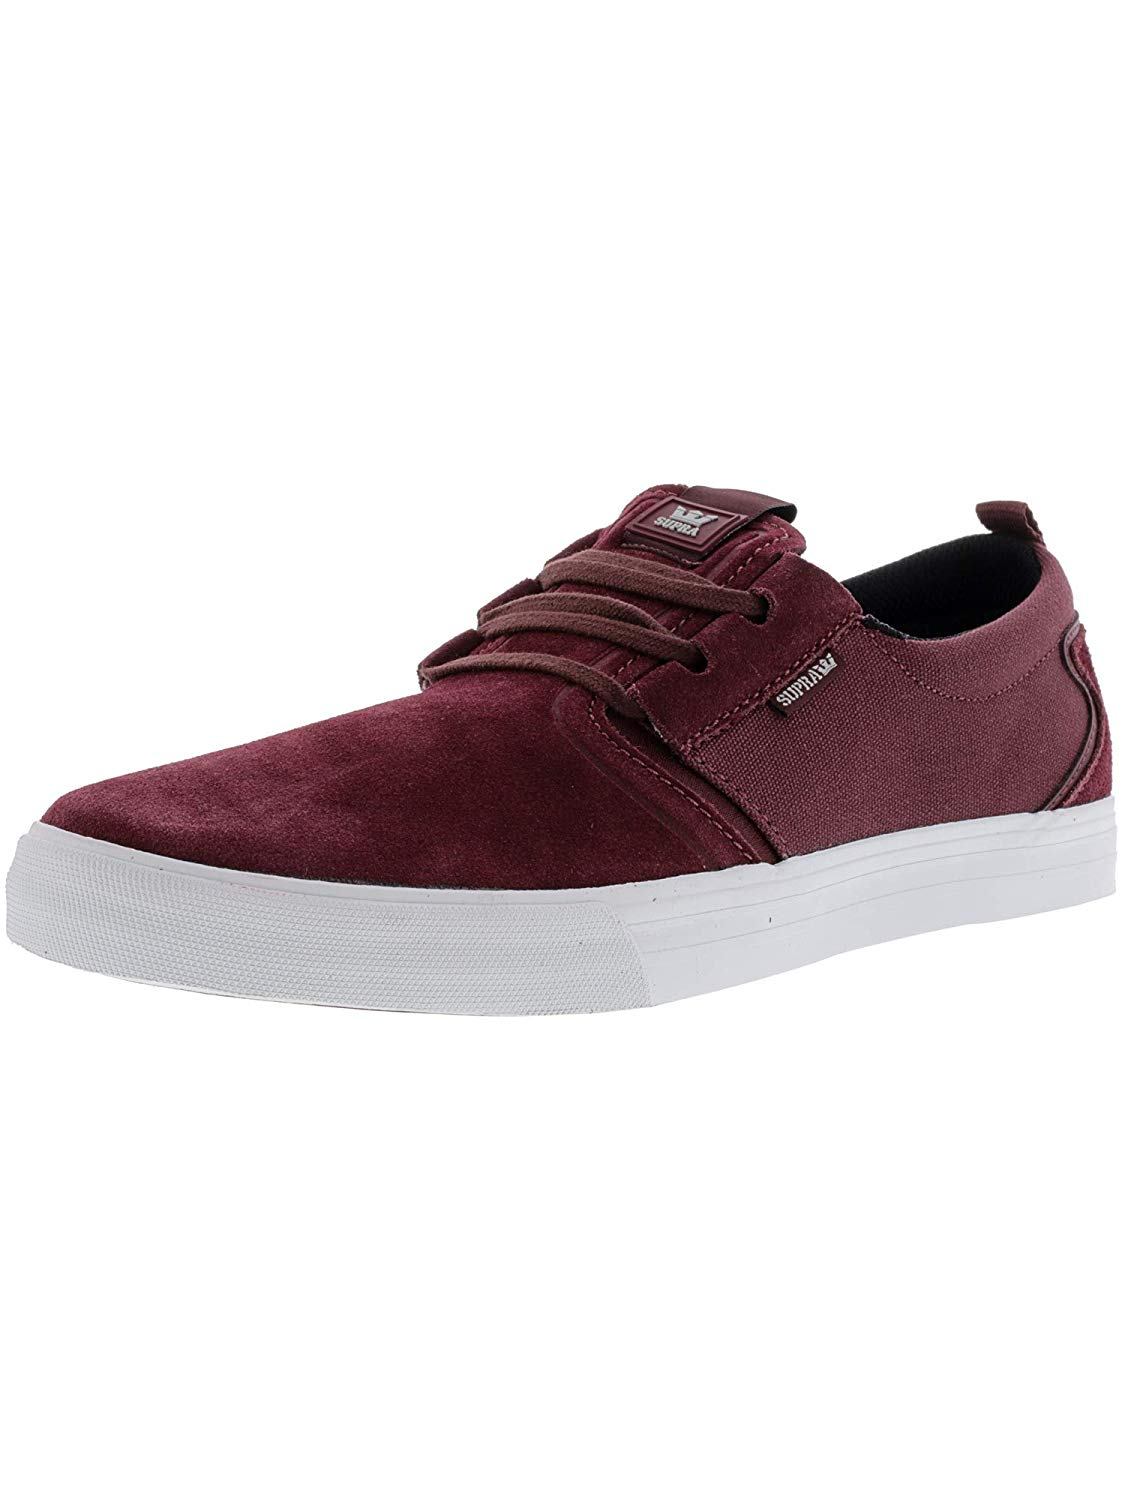 7cb9b4634044a Supra - Mens Flow Skate Shoes